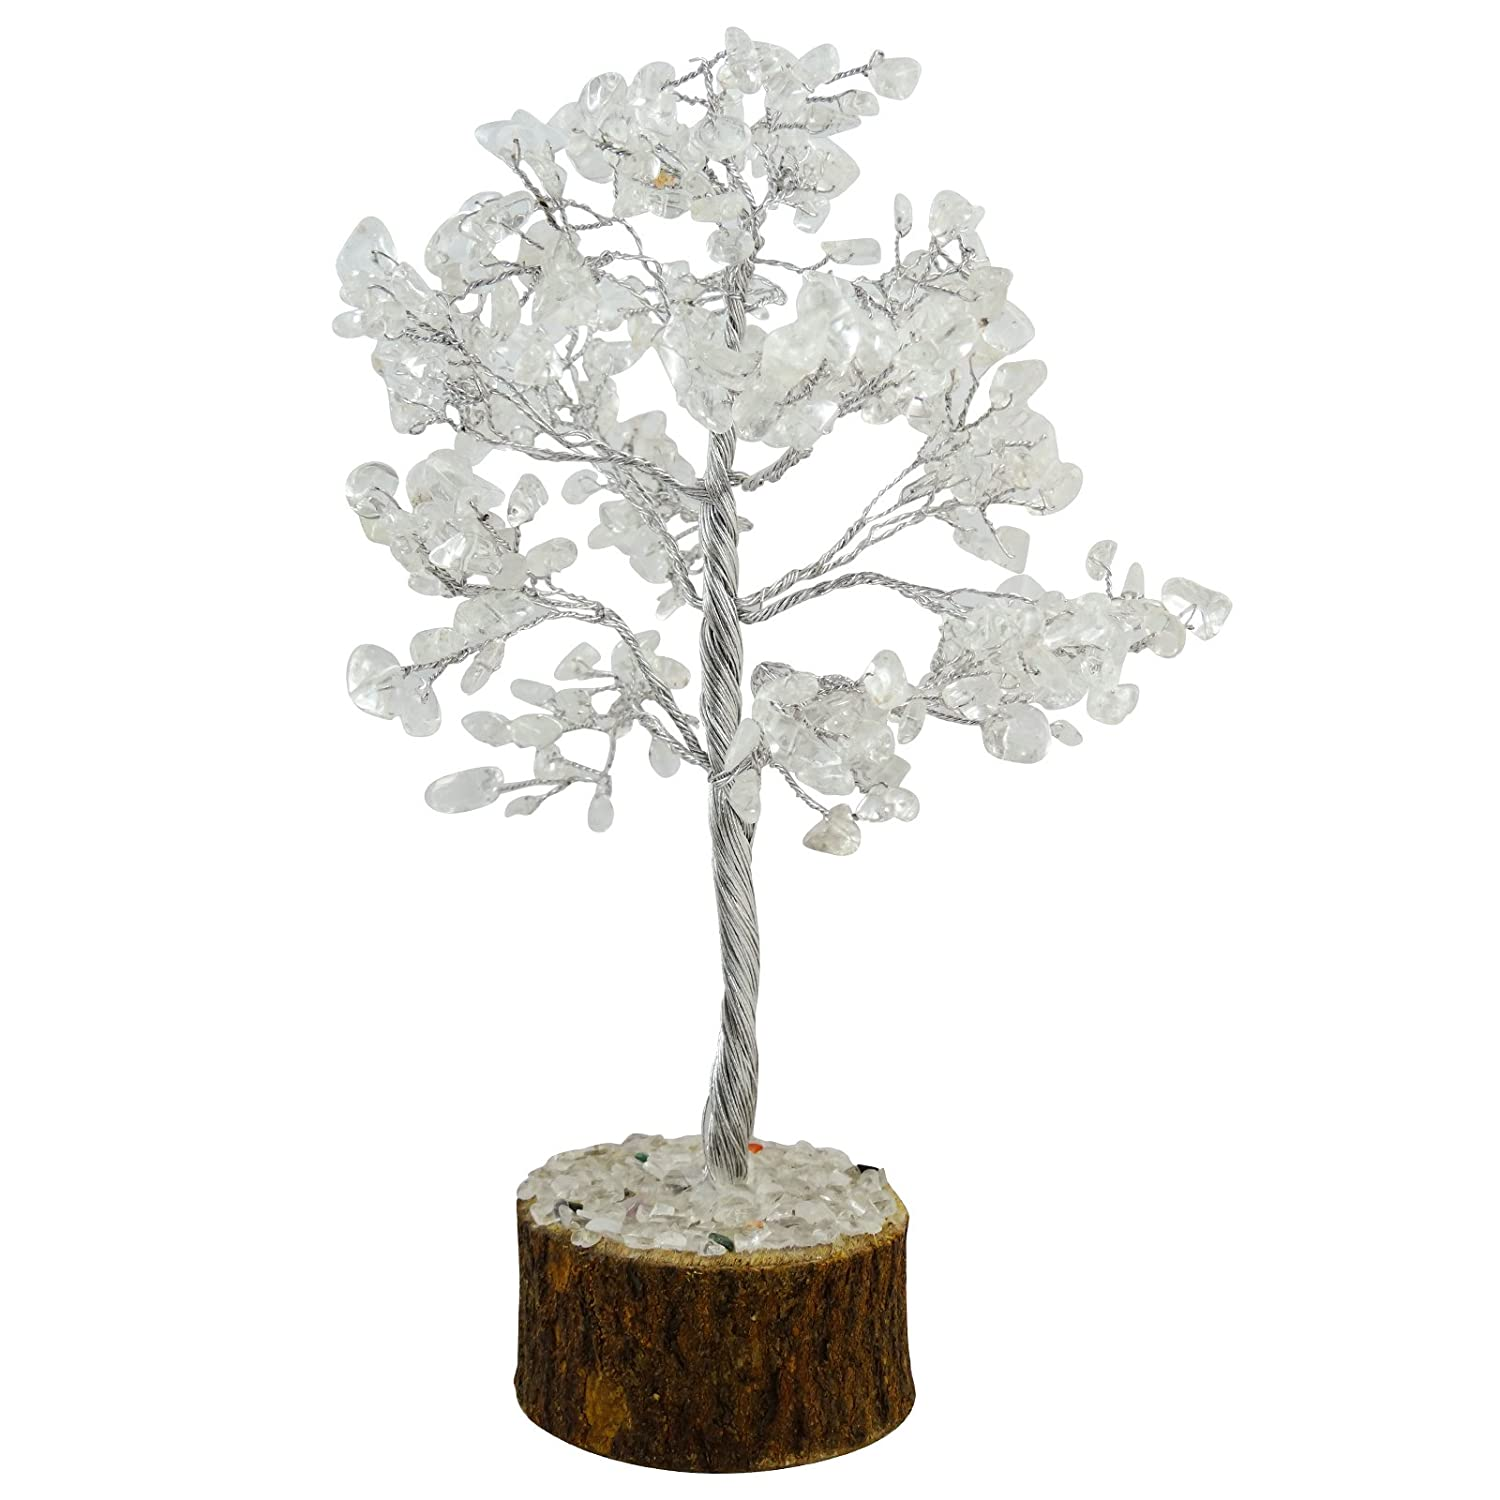 Harmonize Crystal Quartz Tree Spiritual Feng Shui Reiki Healing Stone Table Decor